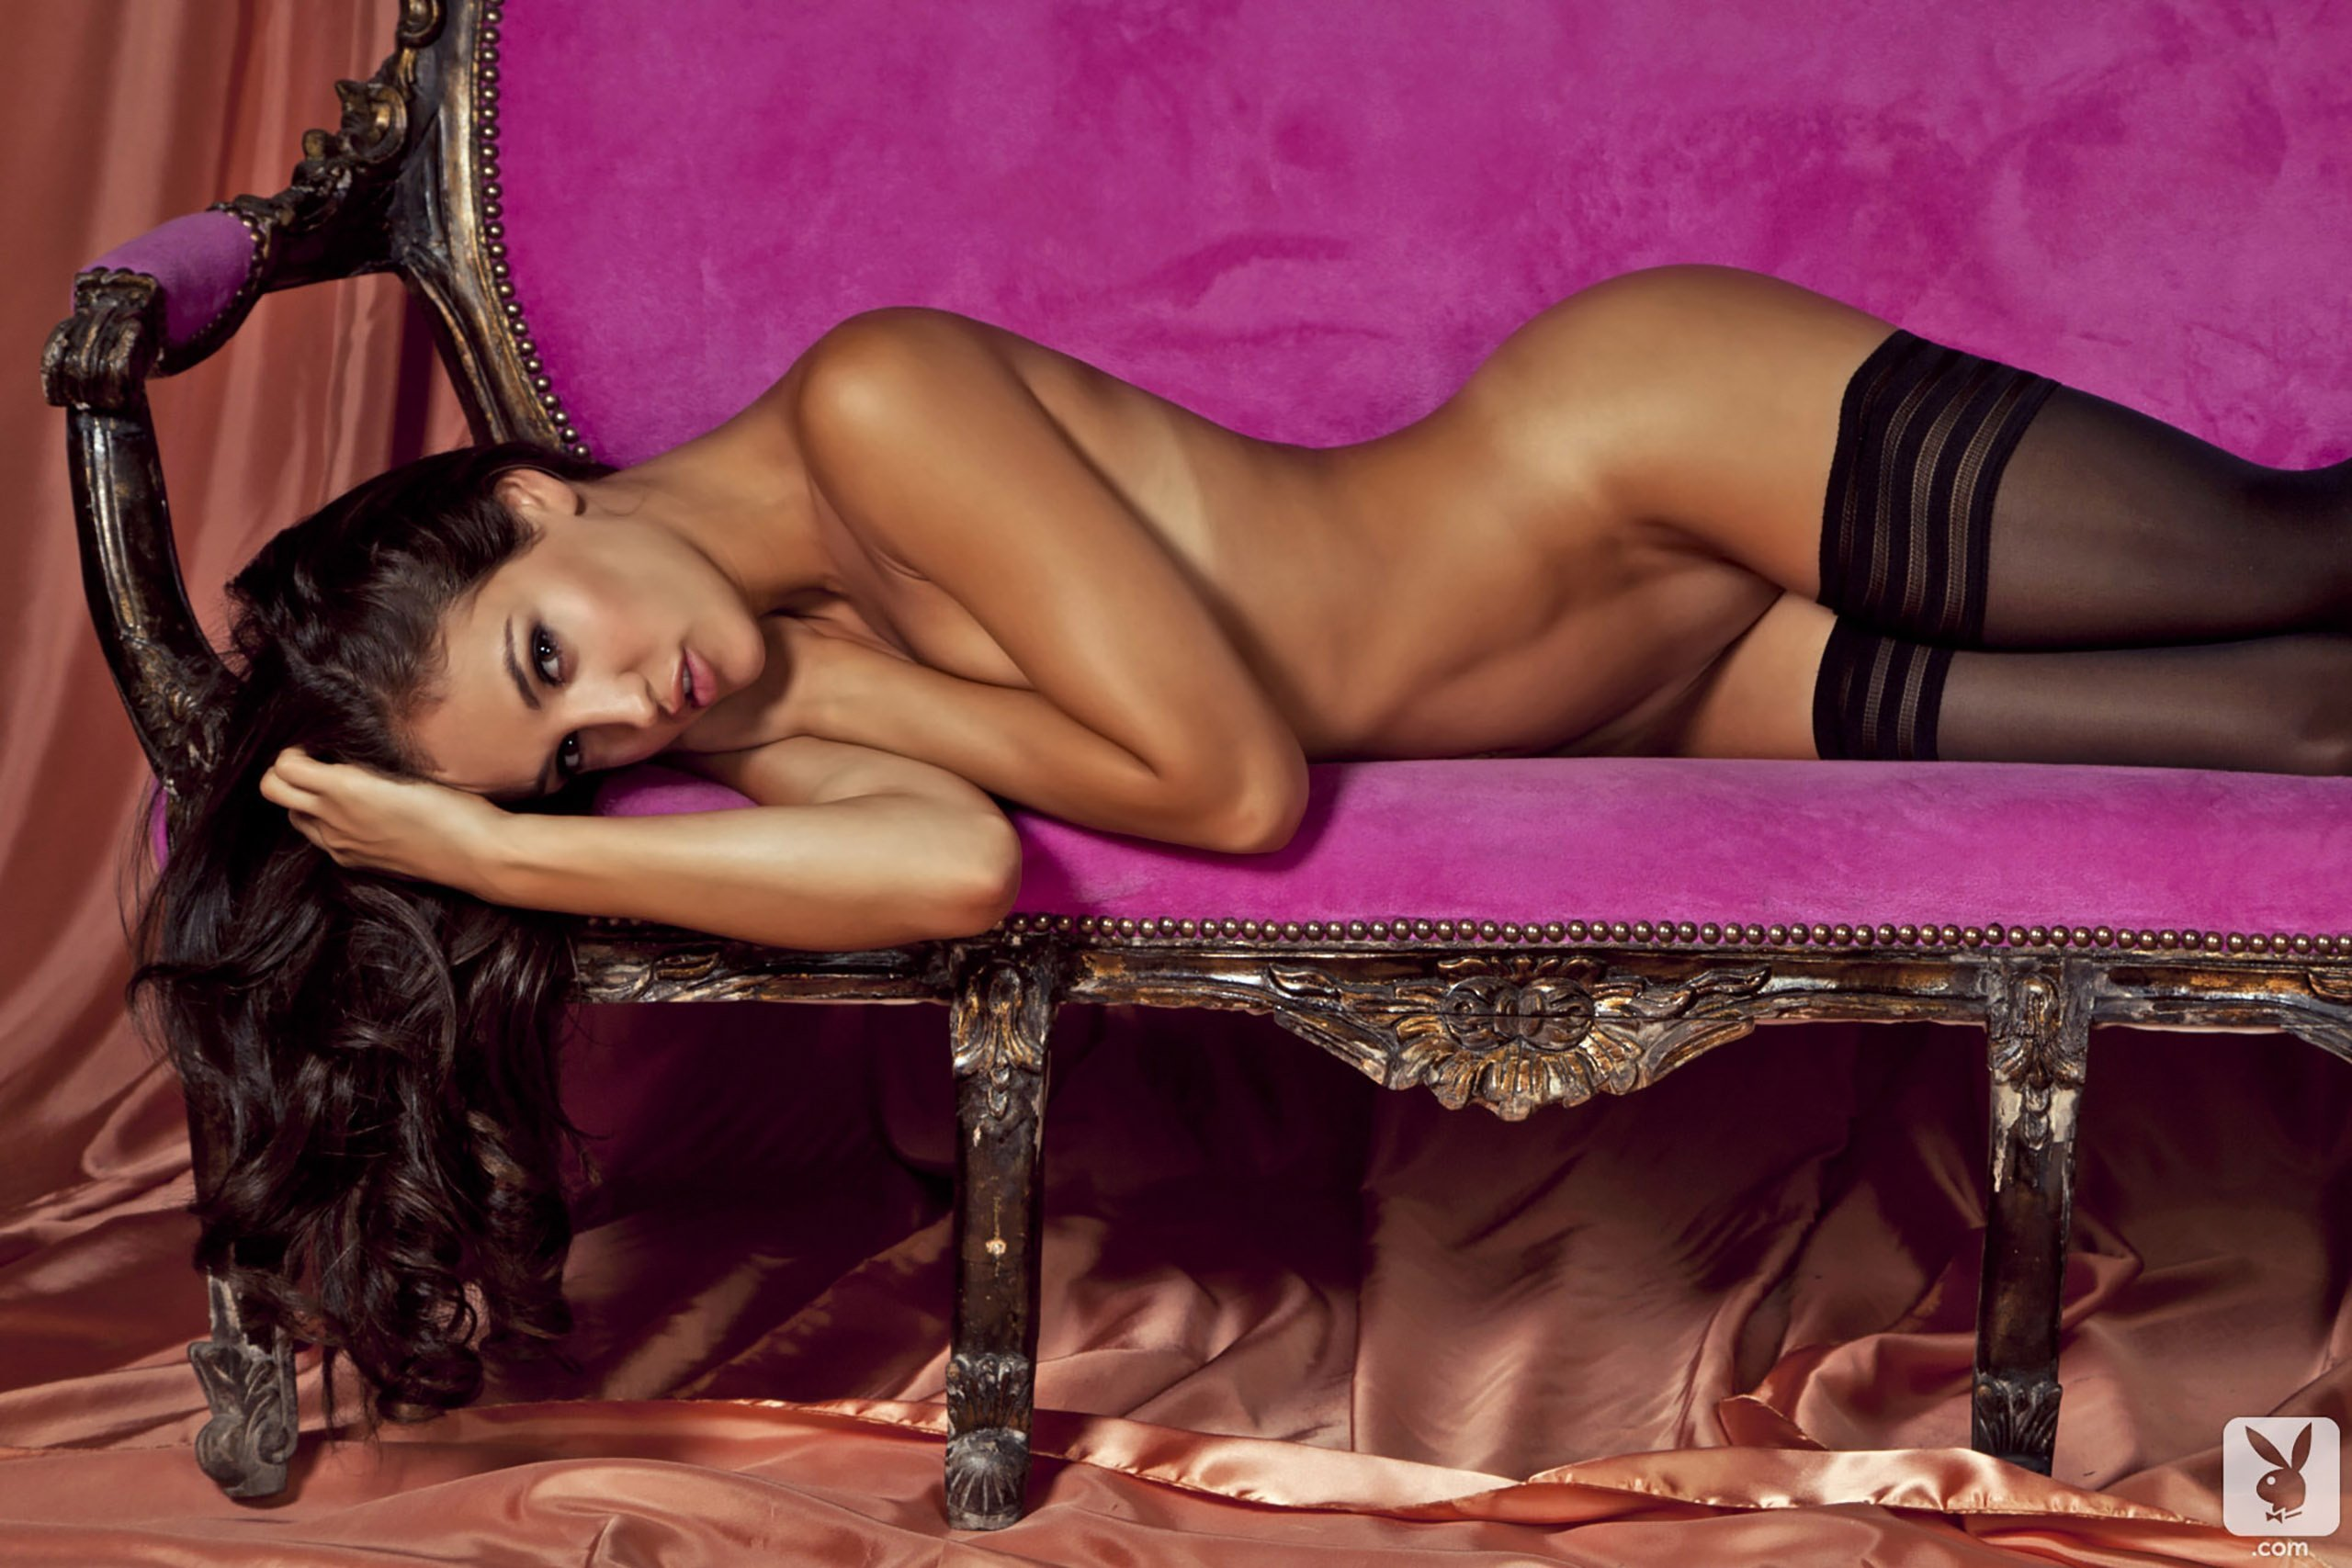 Nude boudoir and erotic photography, fine art glamour